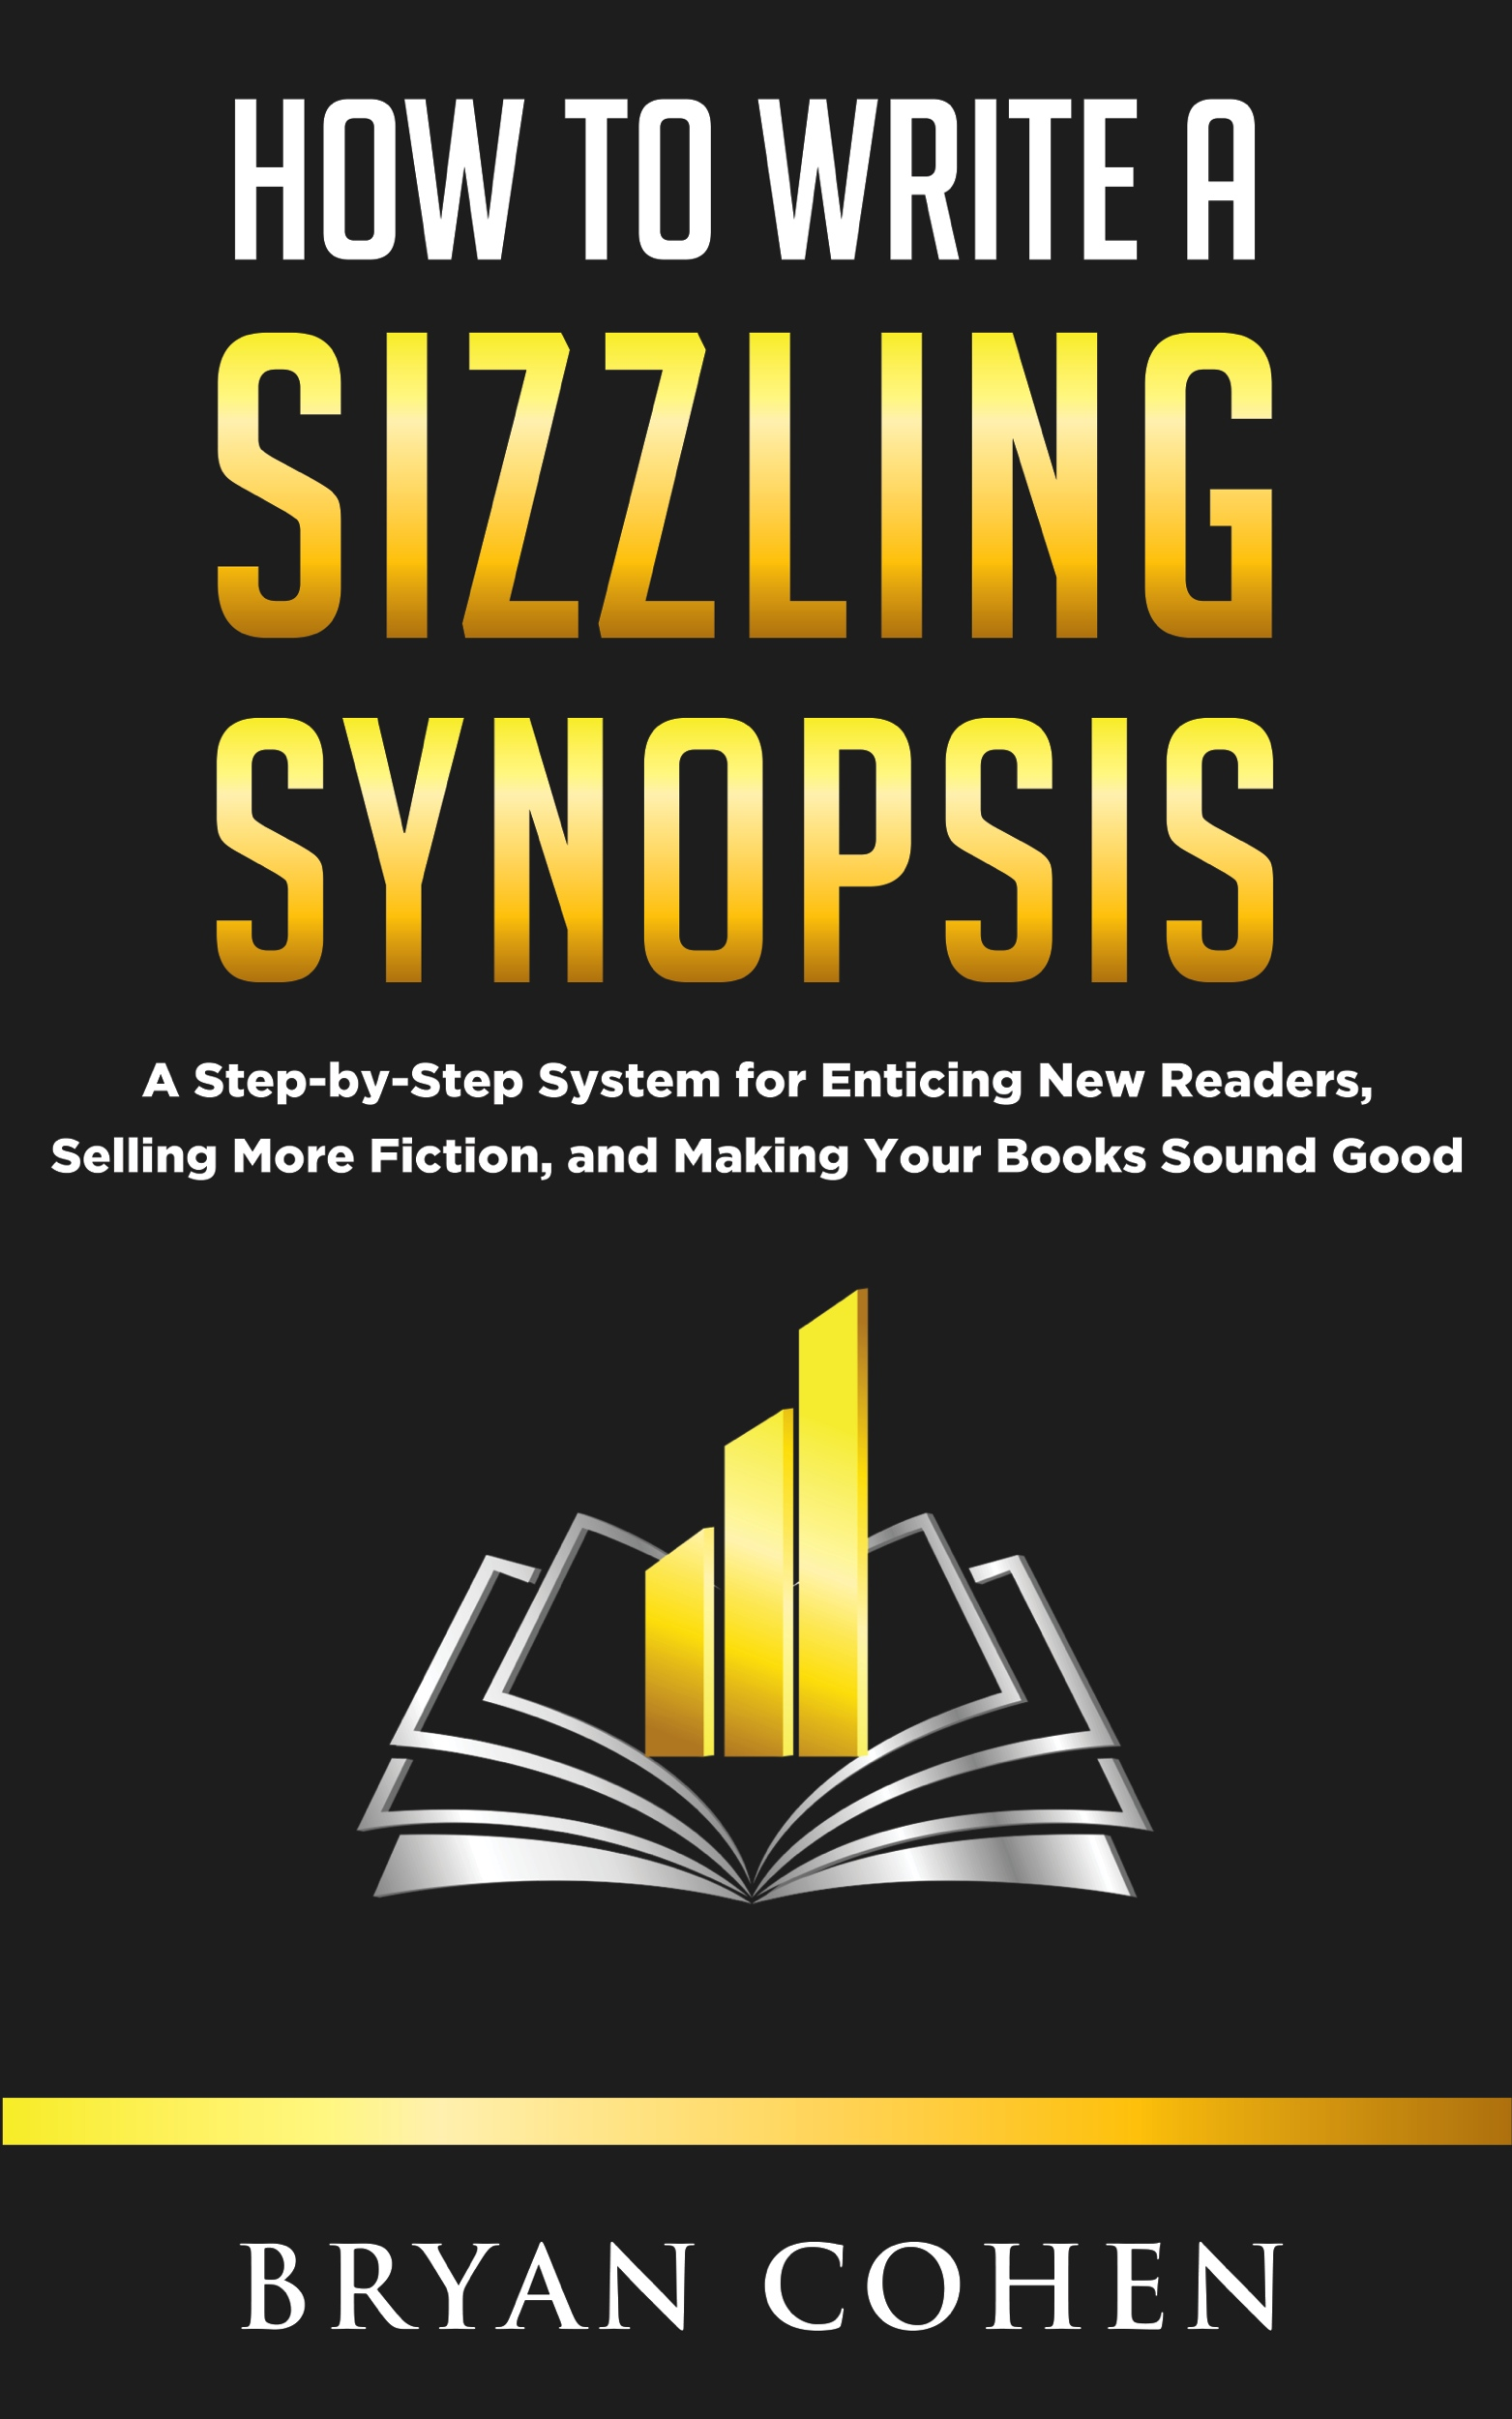 How-to-Write-a-Sizzling-Synopsis-Kindle